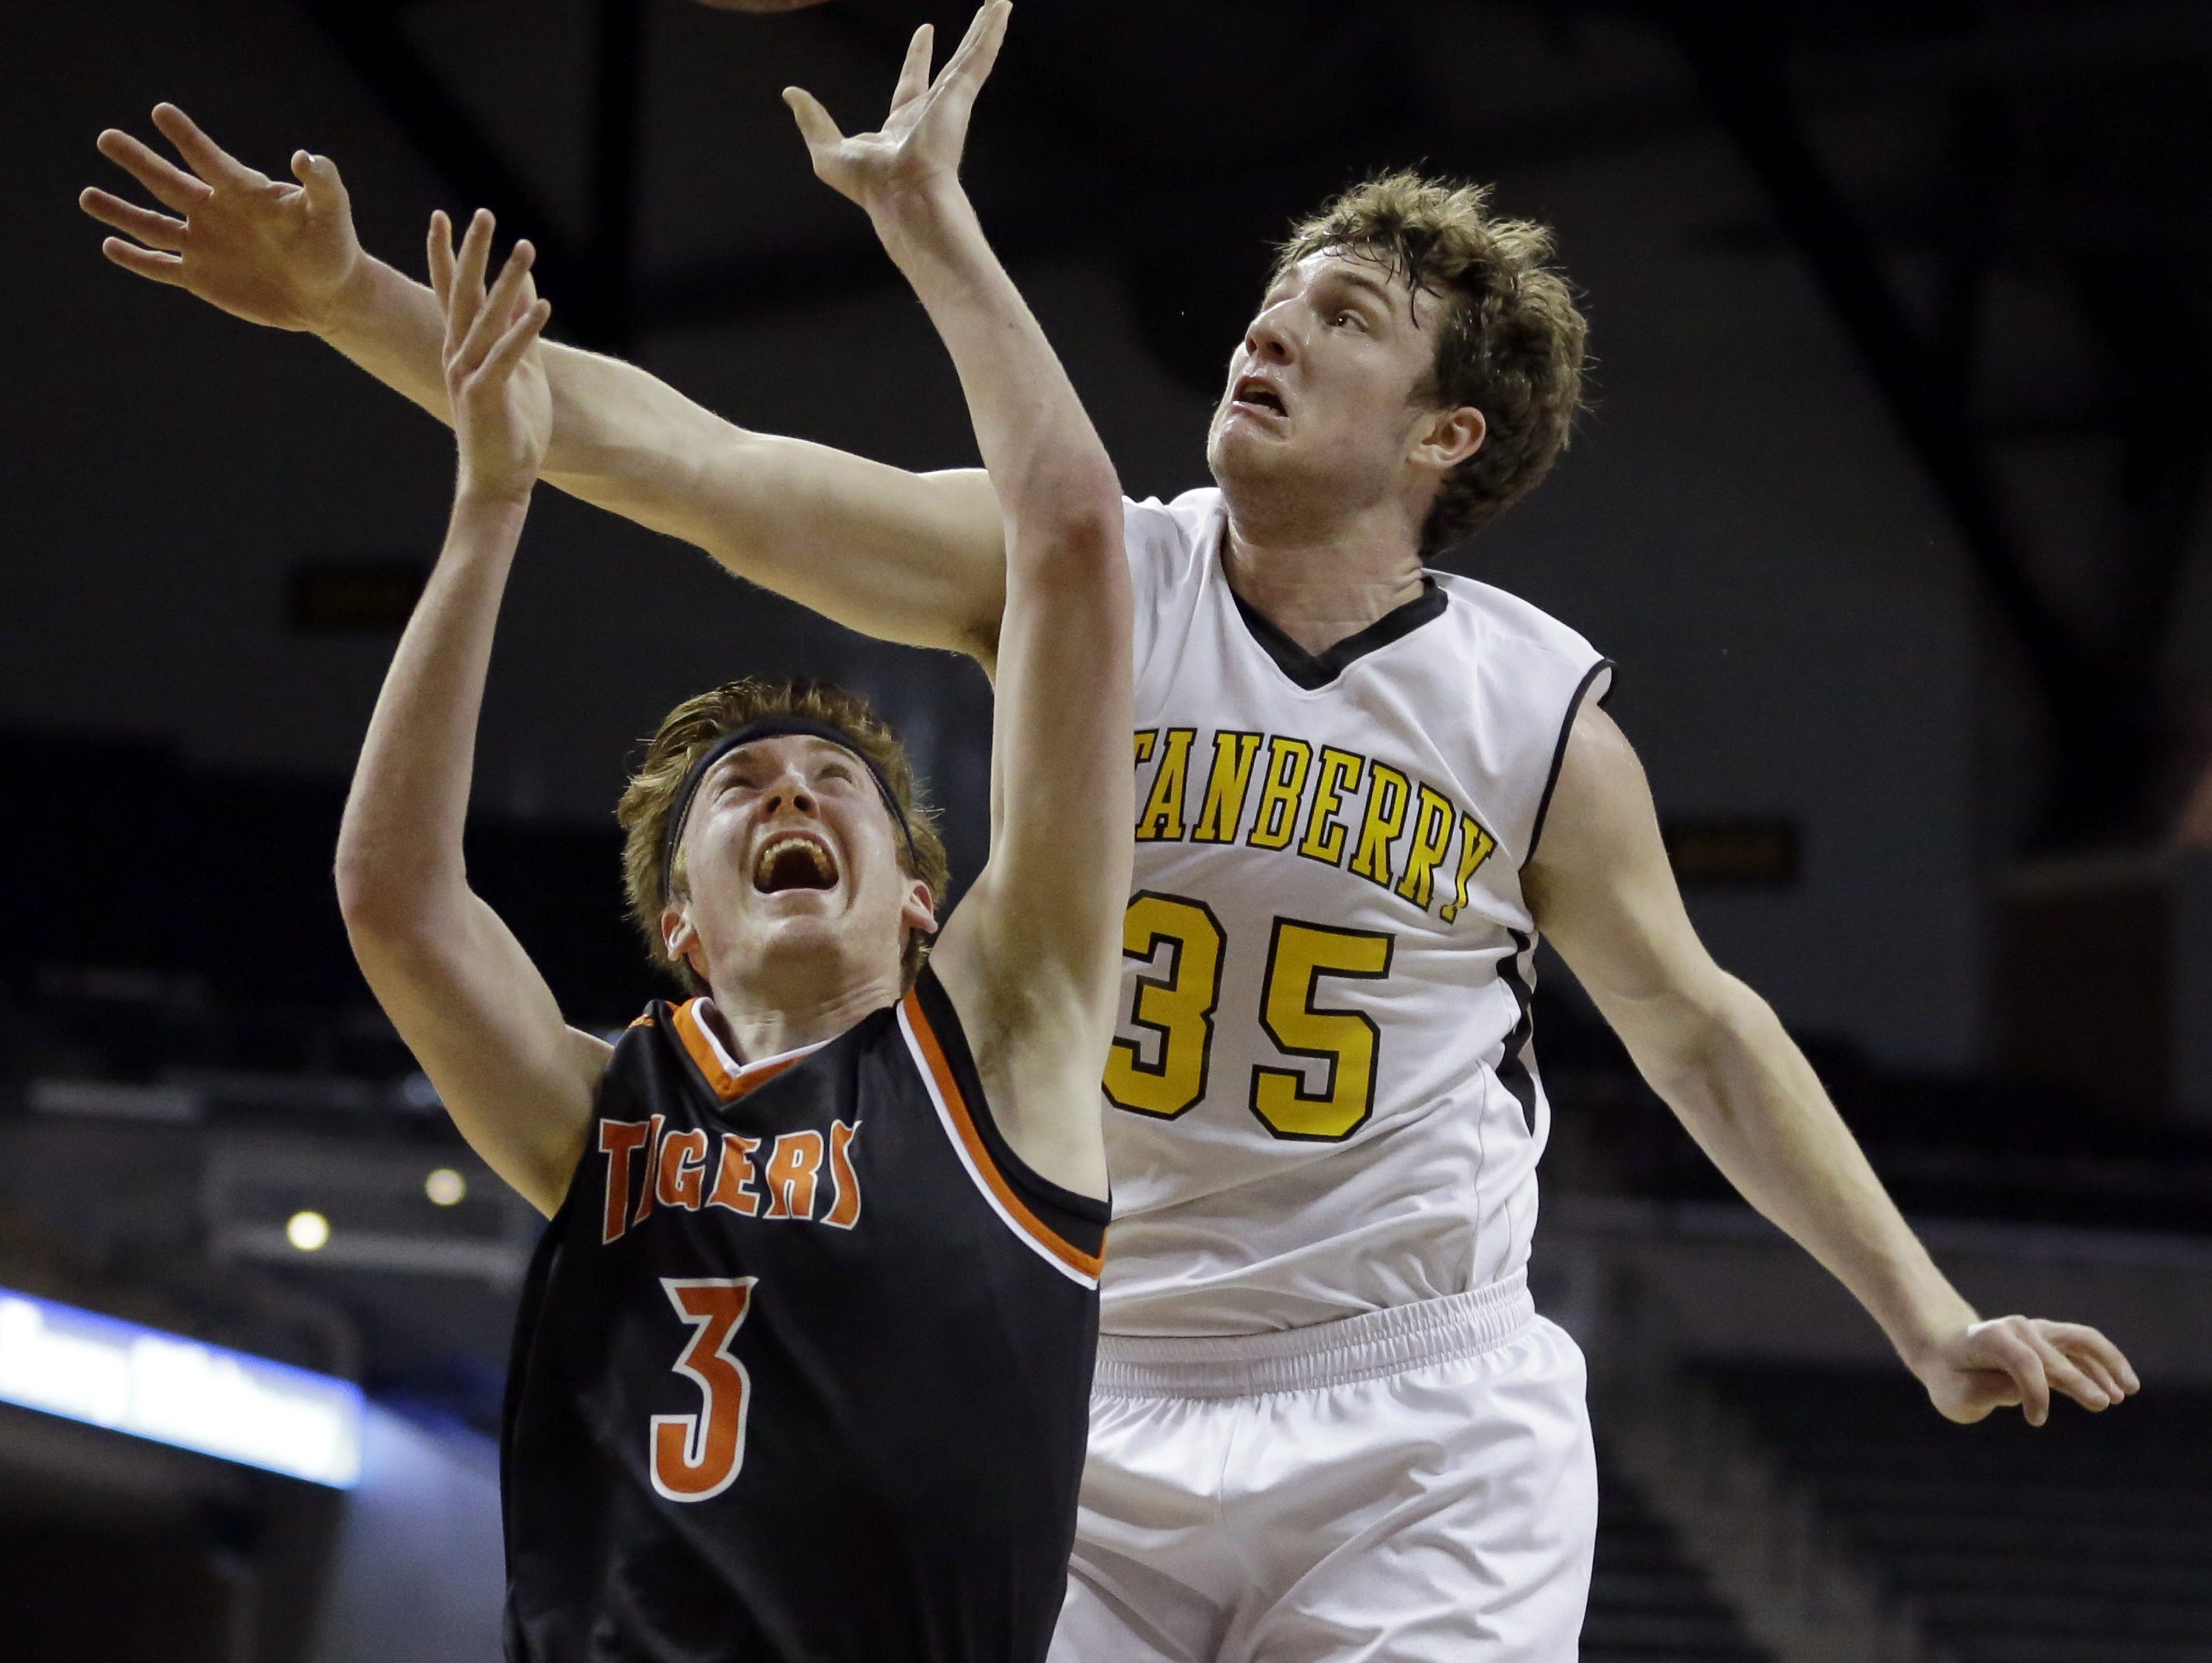 Dallas Meinders (3) of Walnut Grove shoots as Daniel Hailey of Stanberry defends during the Class 1 boys championship game.